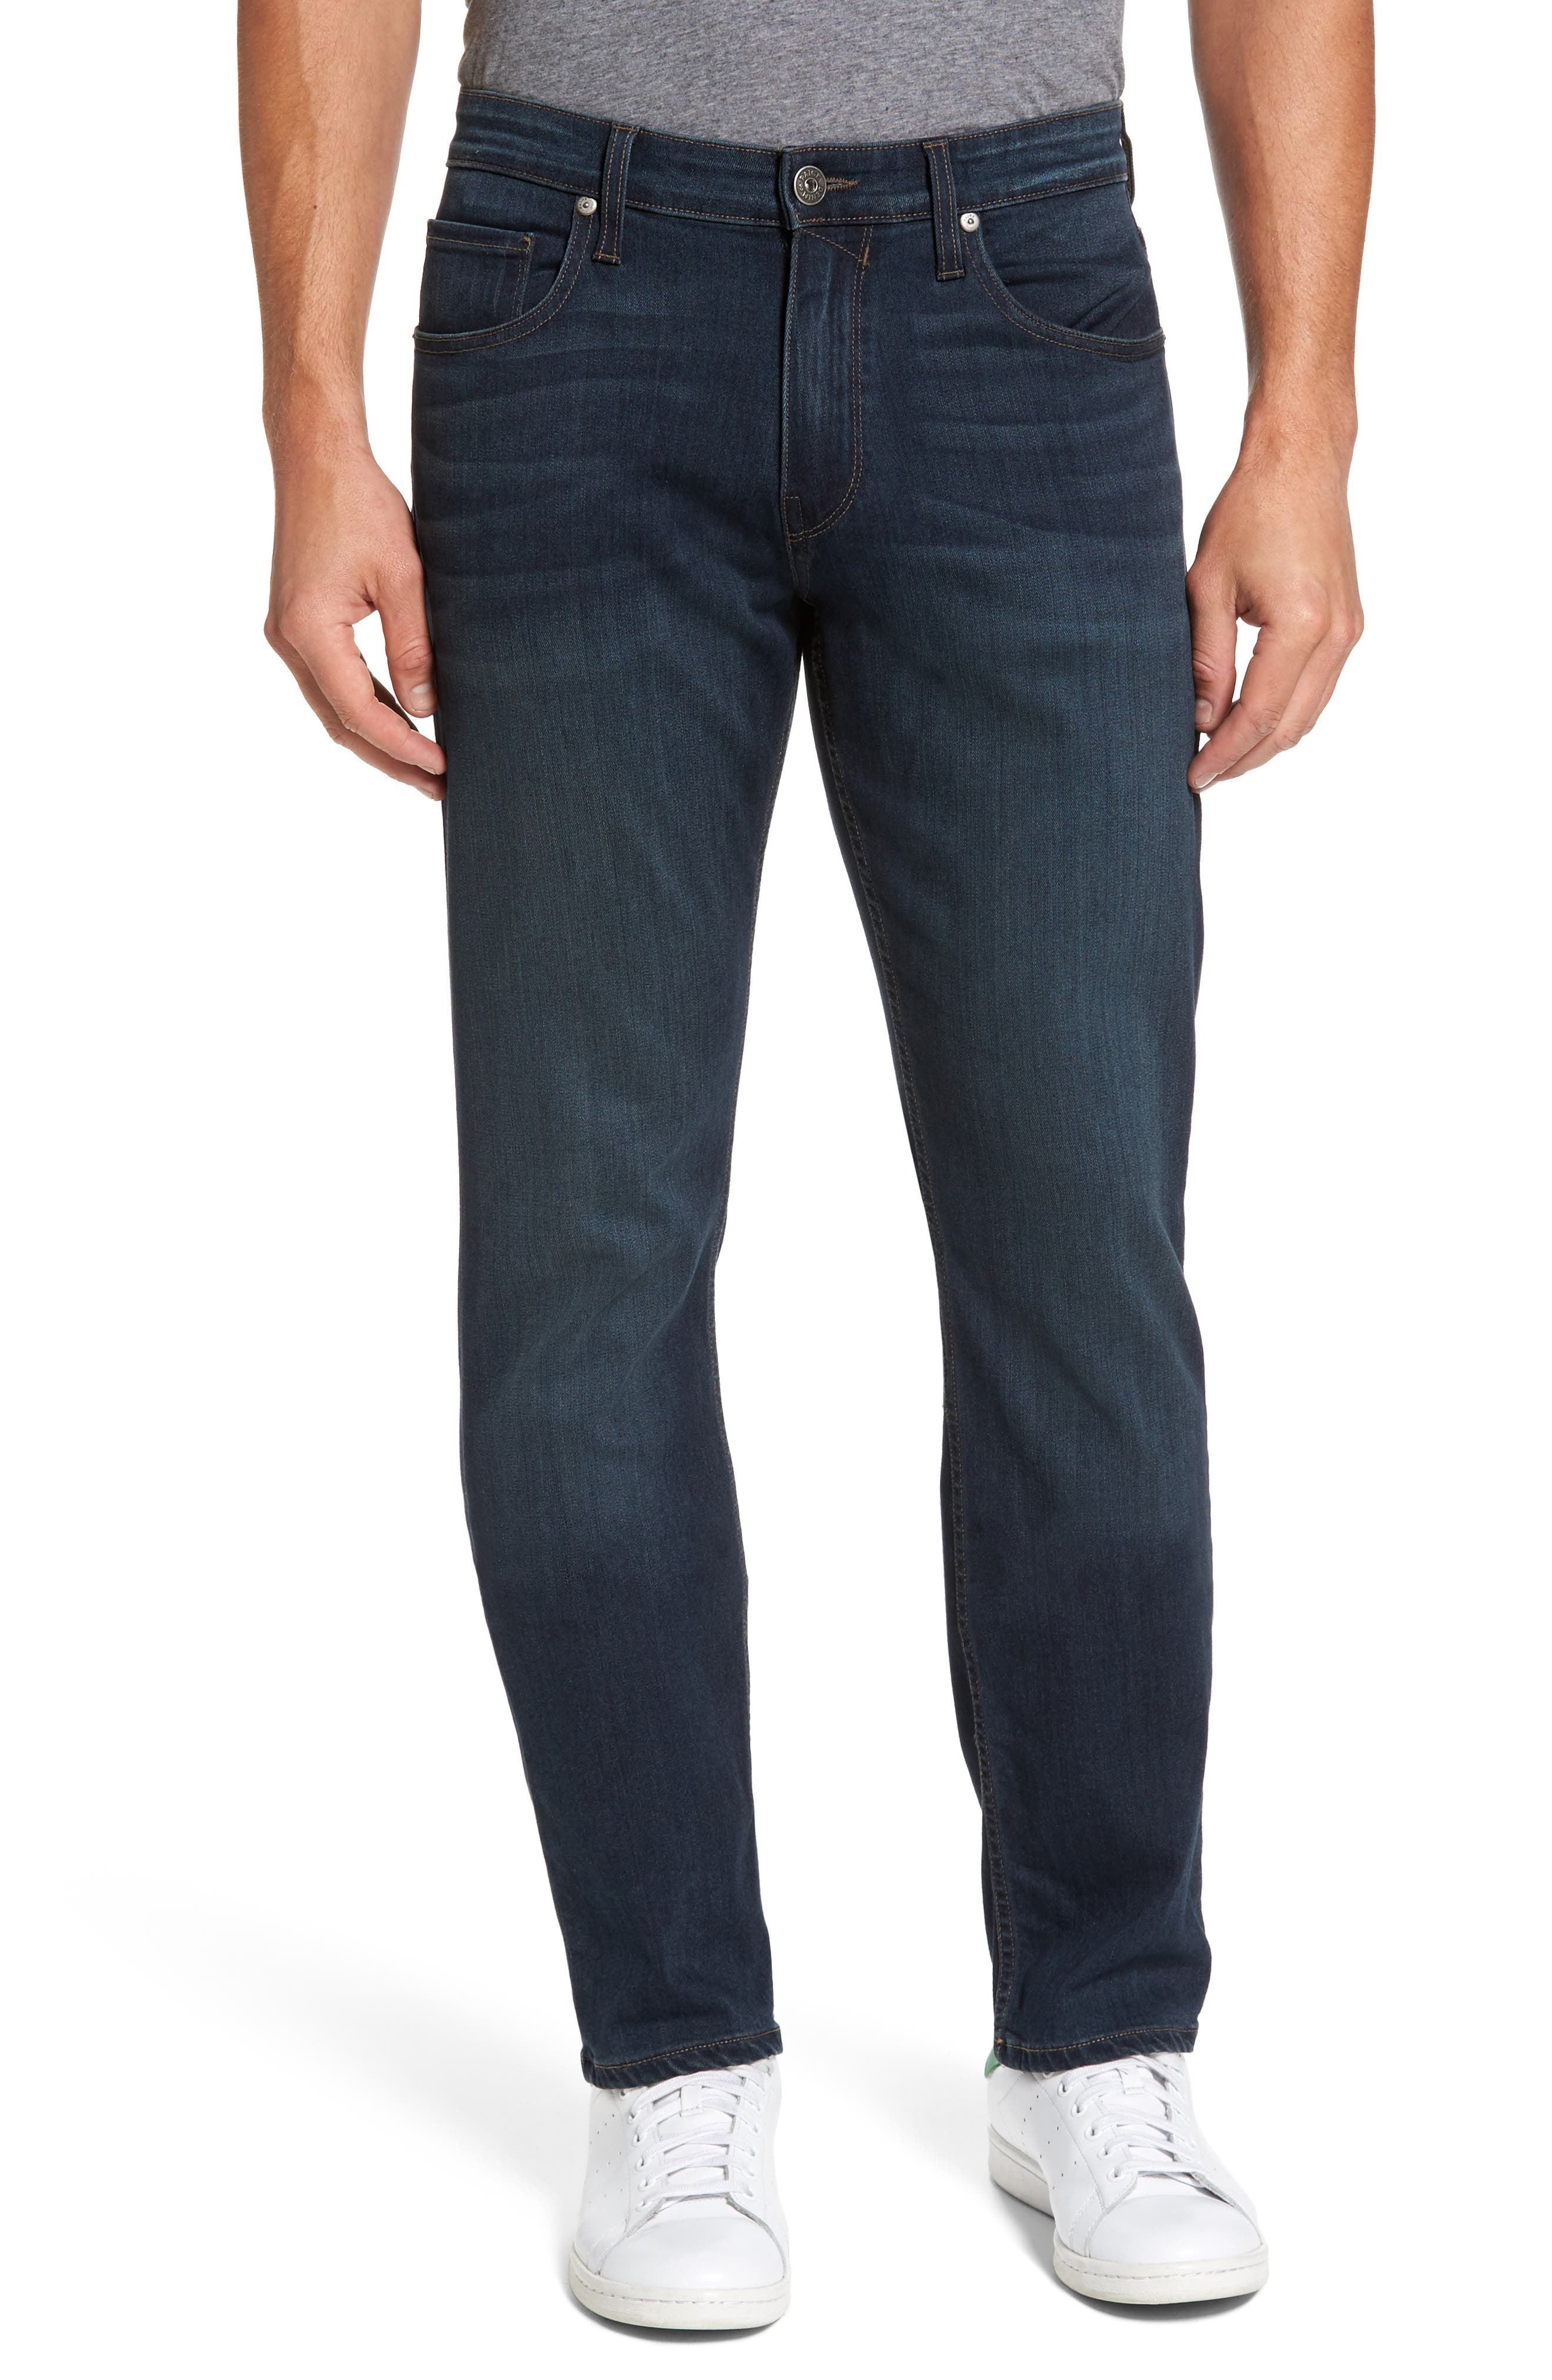 Normandie Straight Fit Jeans,                         Main,                         color, 400